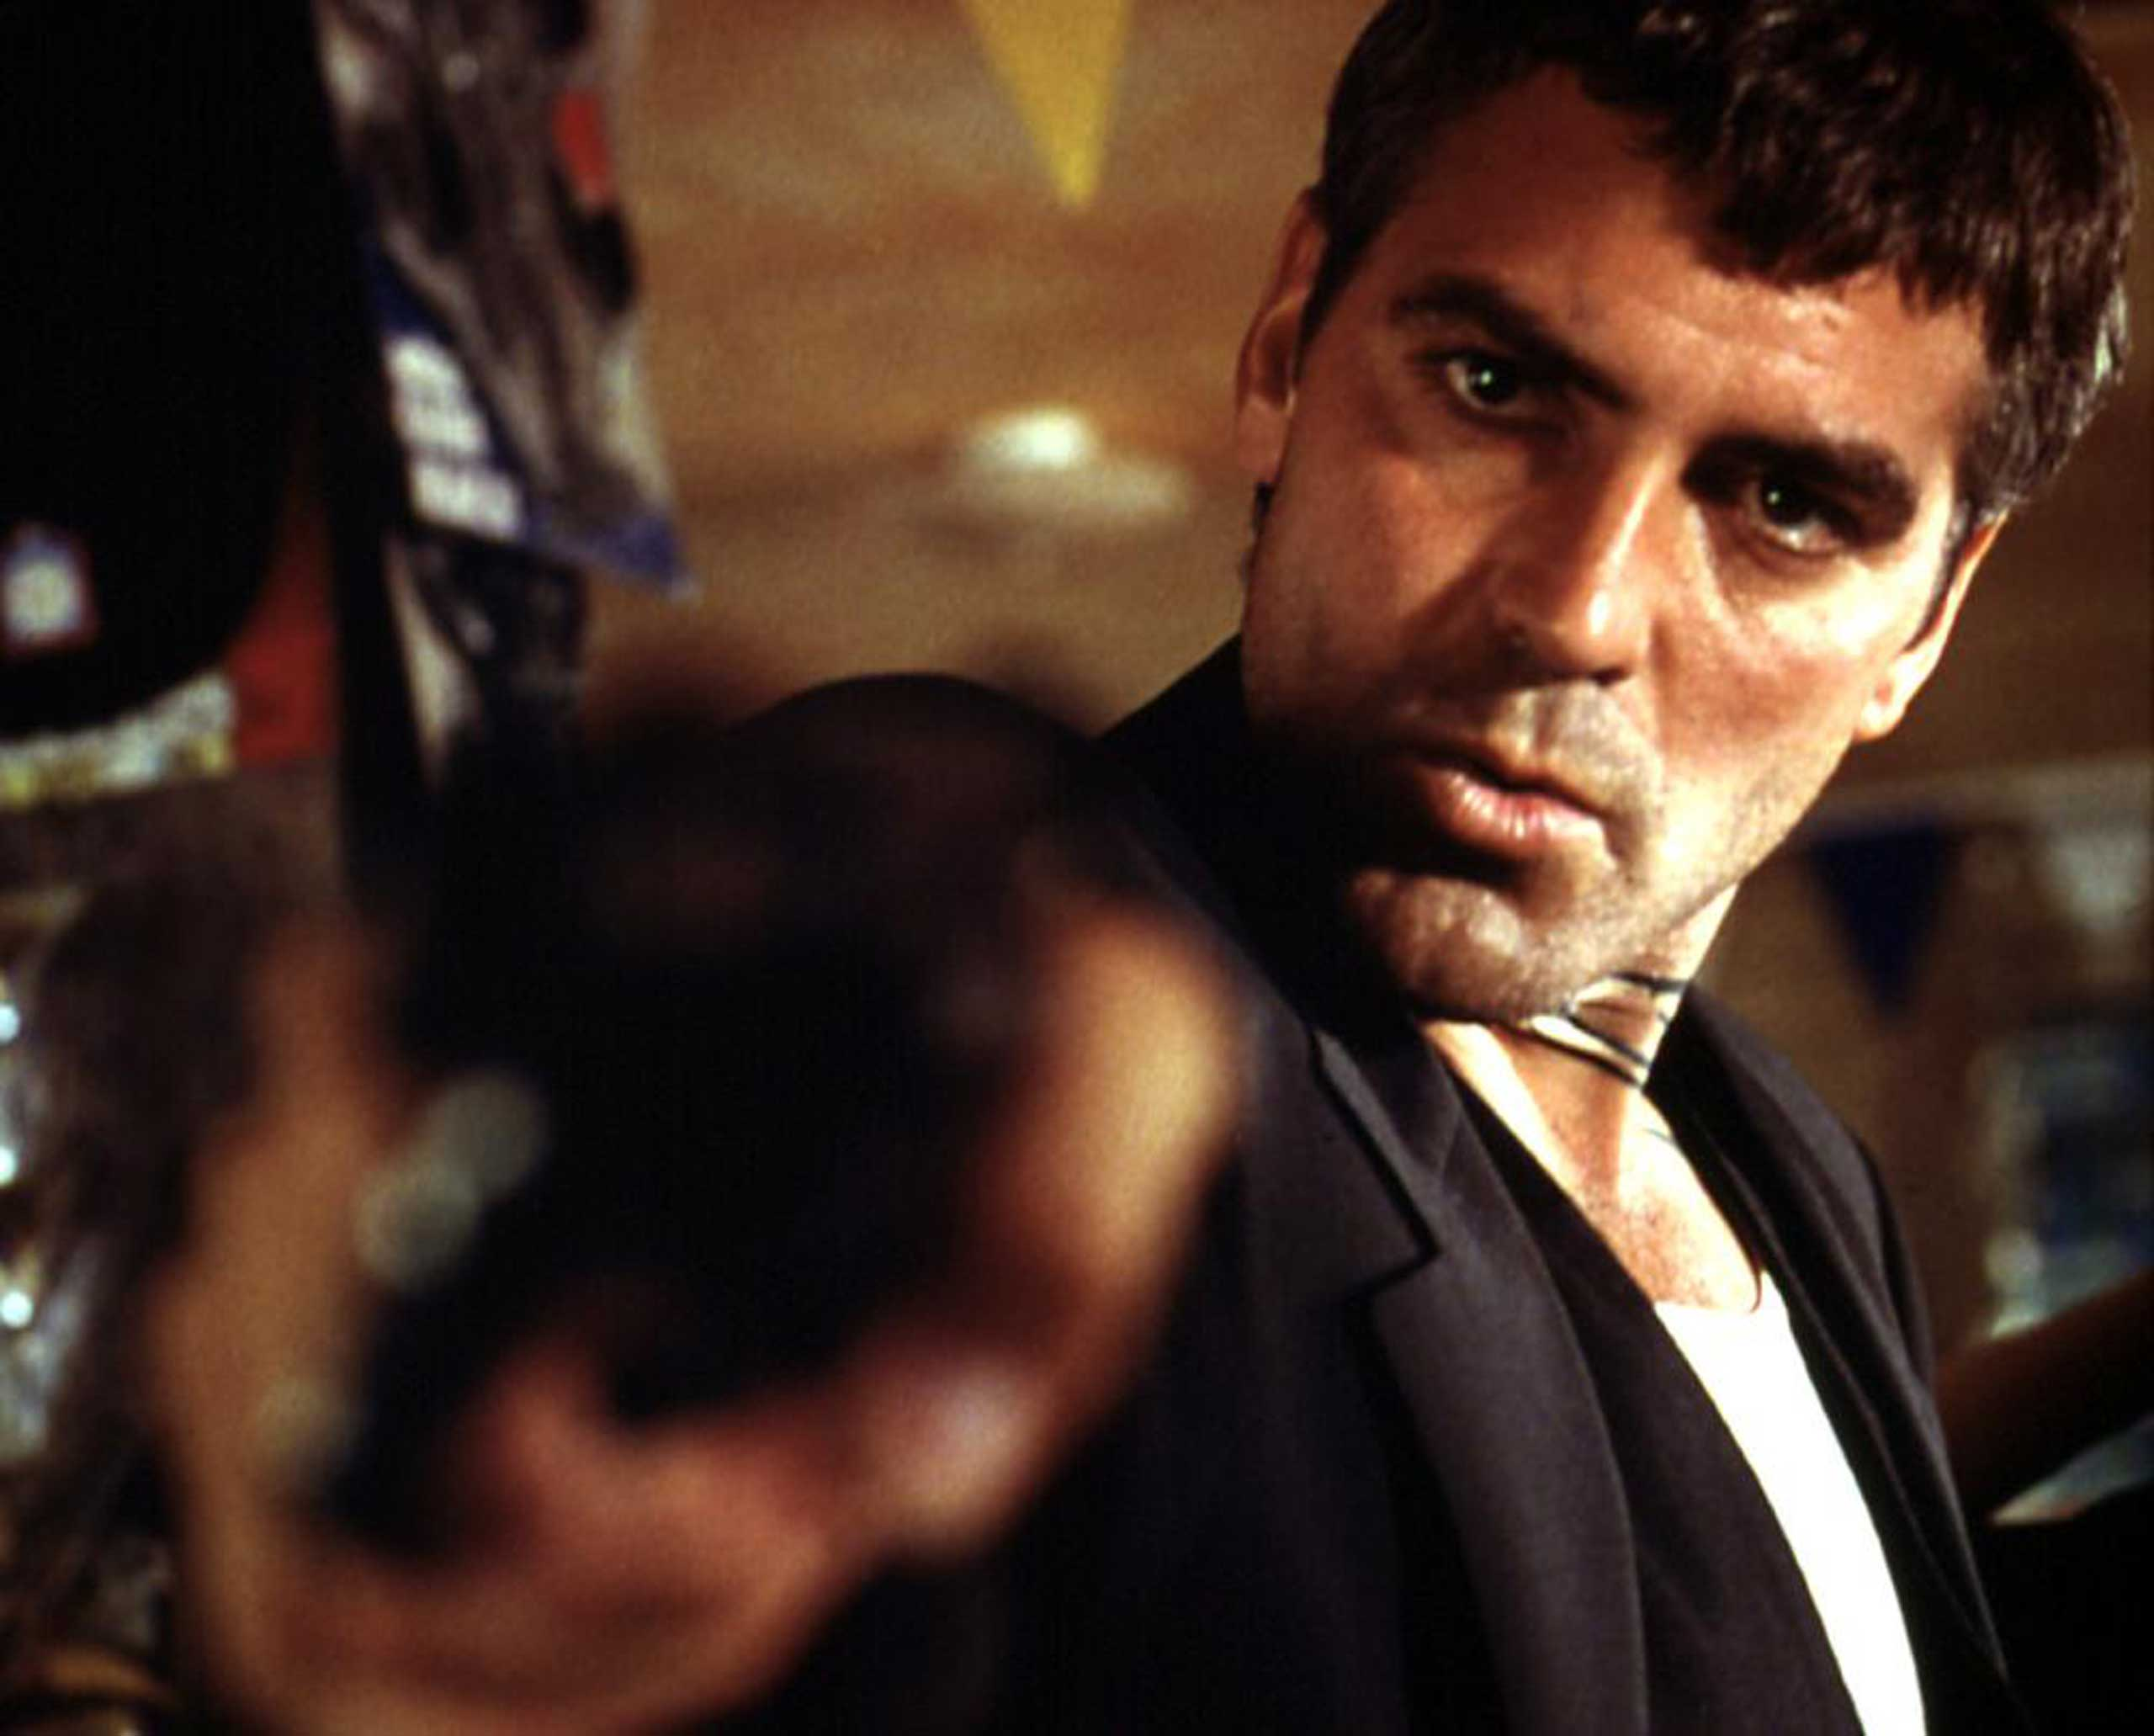 In 1996 Clooney appeared in From Dusk Till Dawn, his first successful movie.